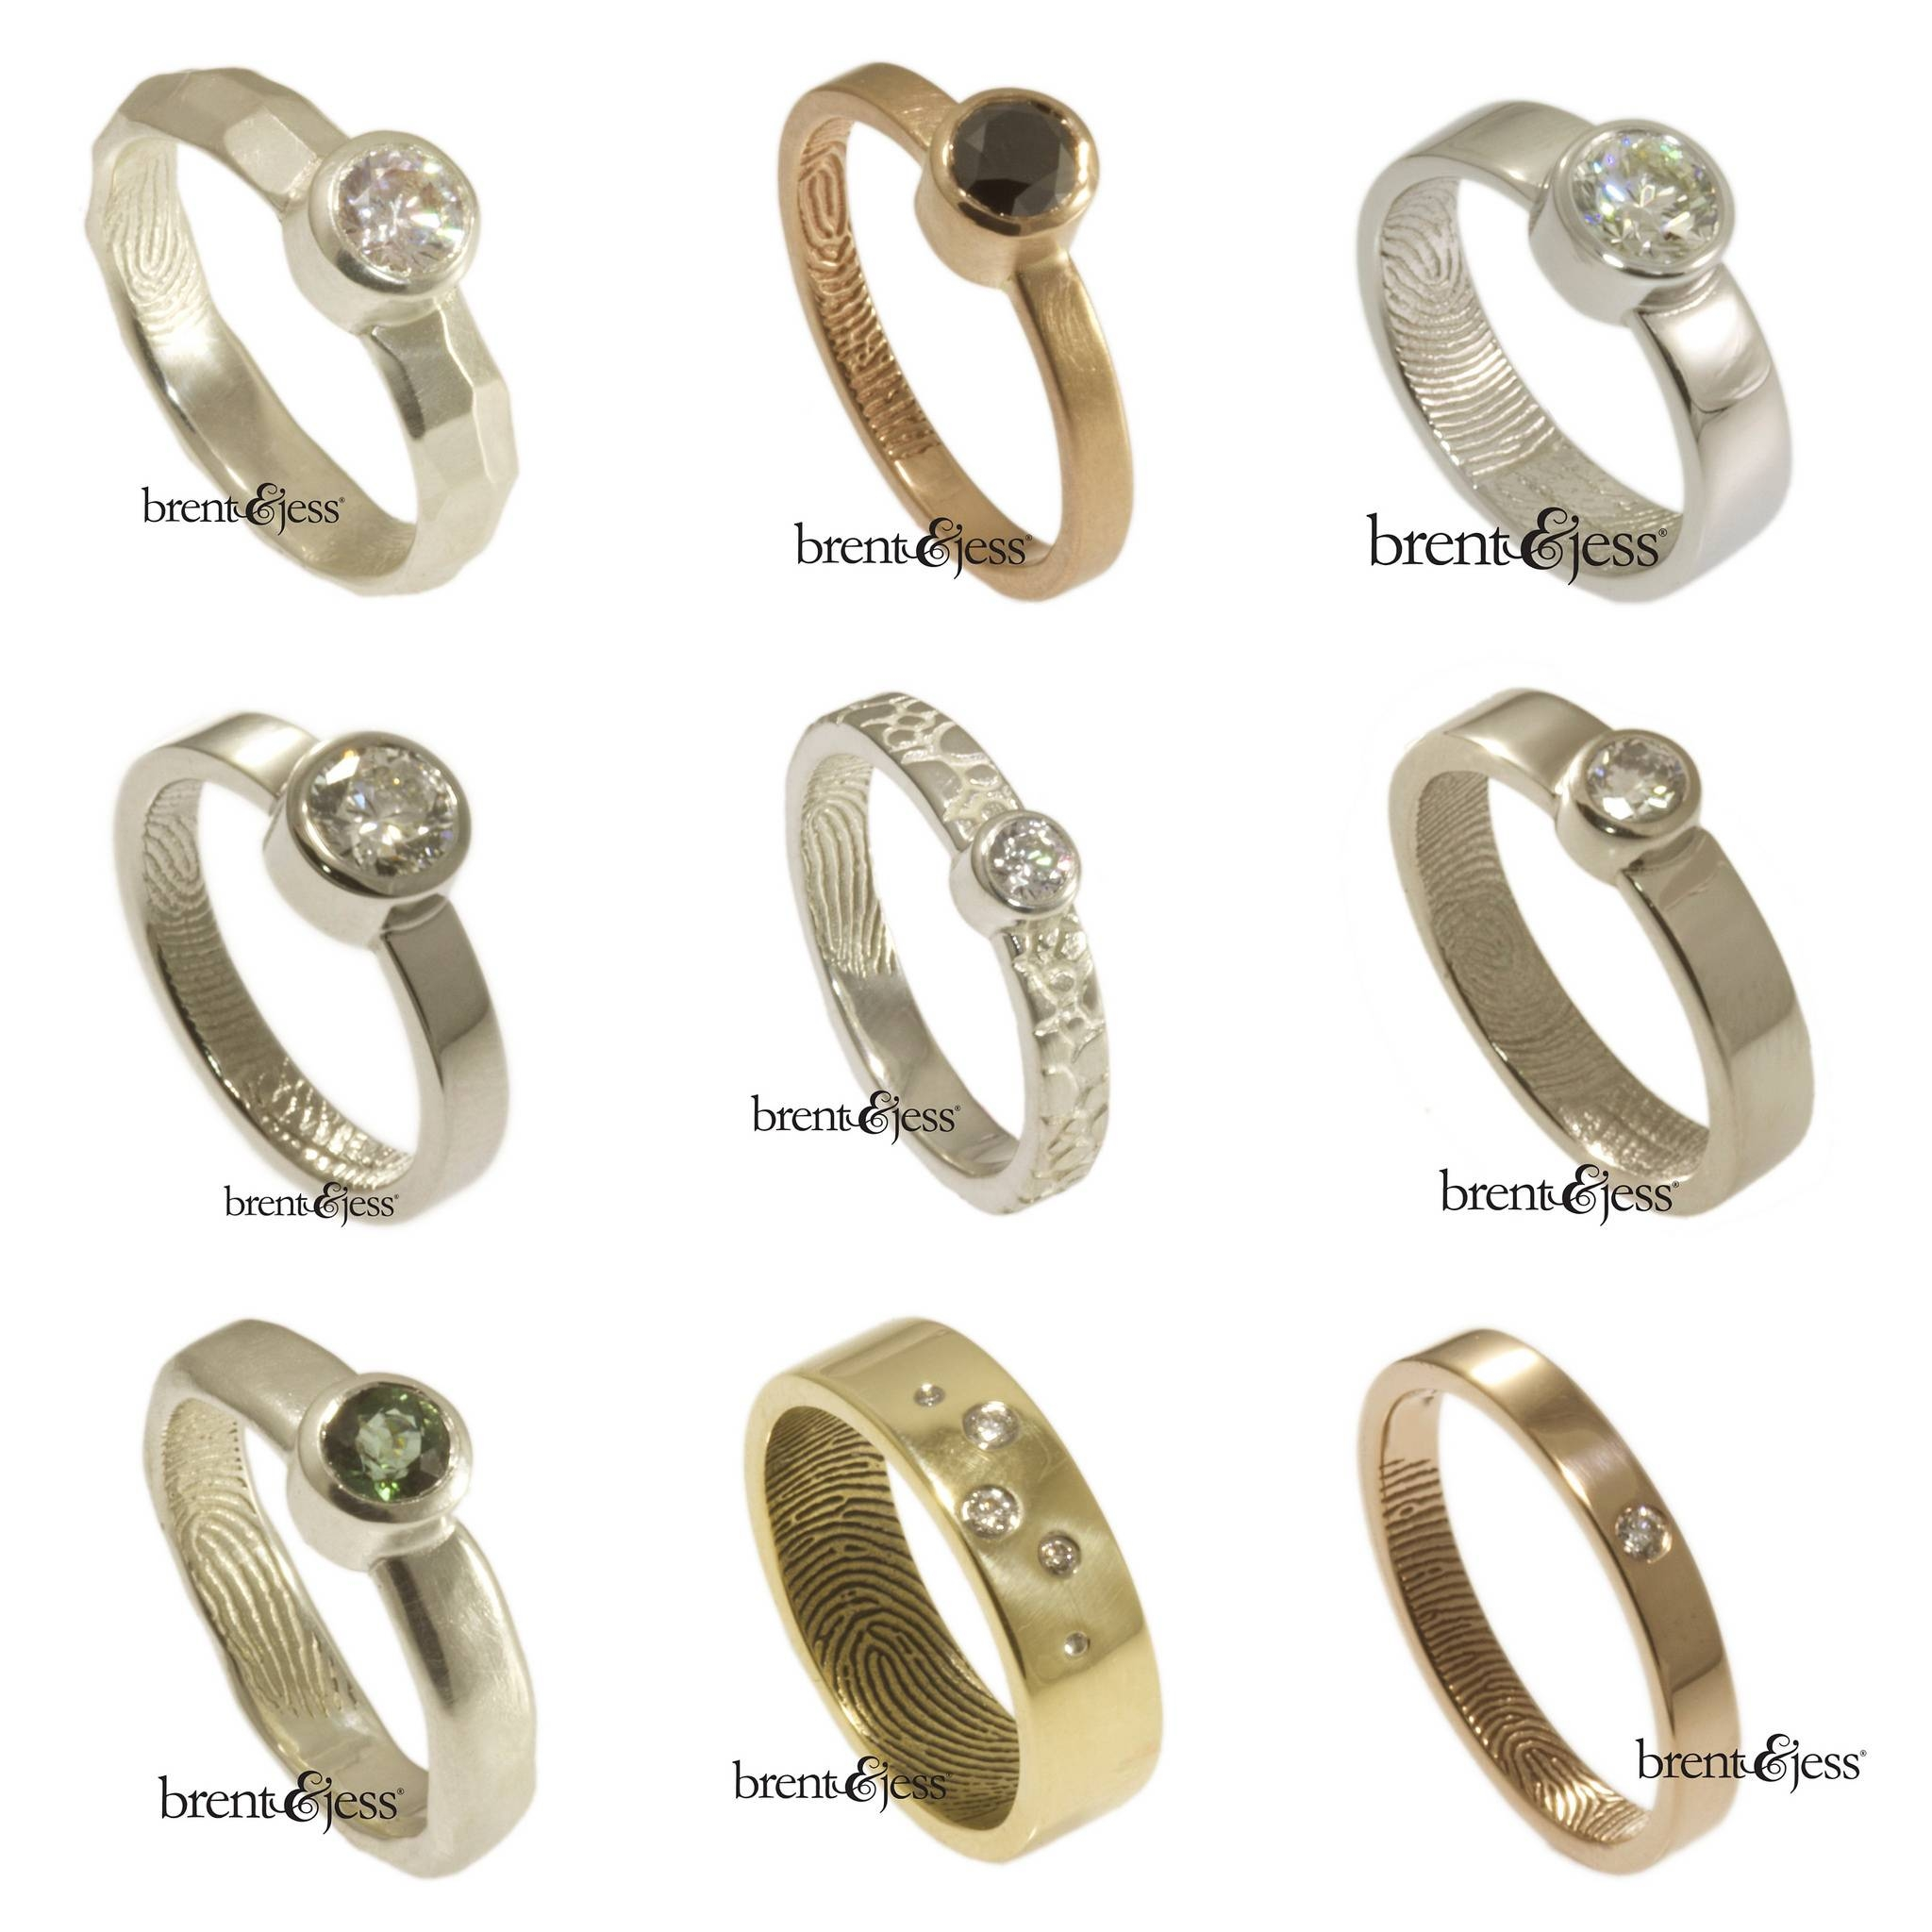 10 Non Traditional Engagement Rings For Under $1k | A Practical Throughout Traditional Style Engagement Rings (View 2 of 15)